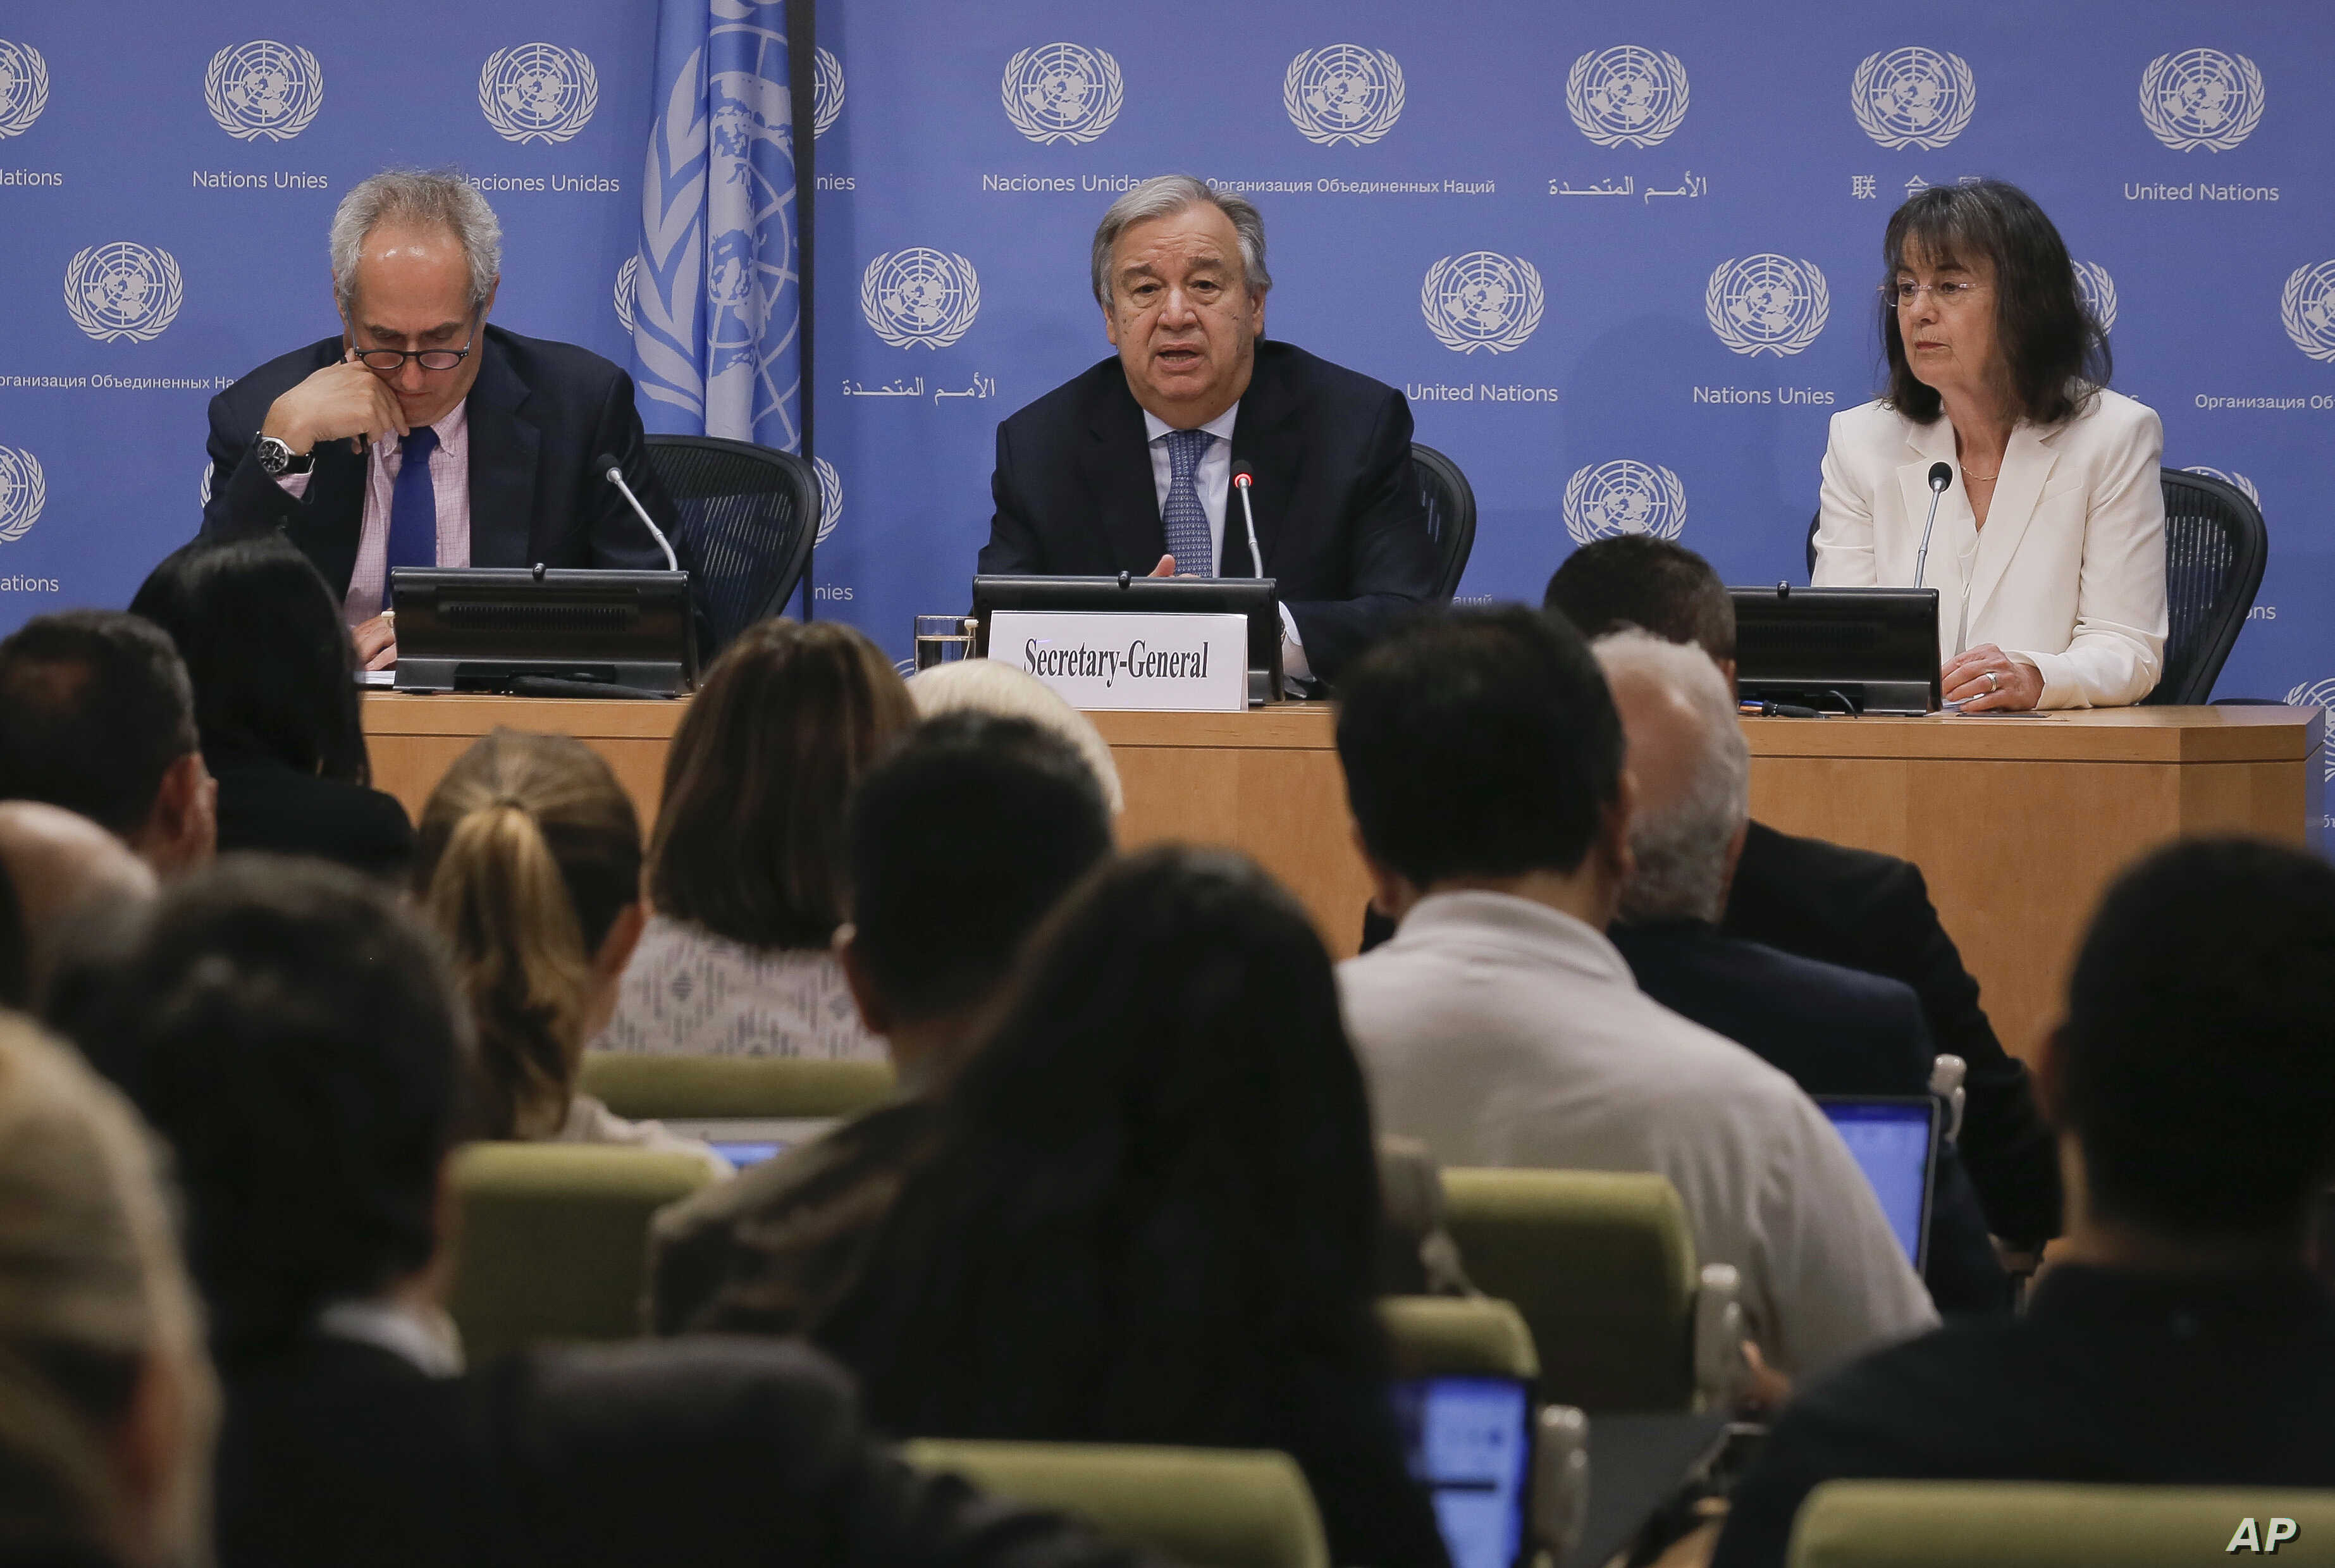 Secretary-General António Guterres, center, accompanied by U.N. spokesman Stéphane Dujarric, left, and Ninette Kelley, director of the U.N. High Commissioner for Refugees, speaks to U.N. correspondents on World Refugee Day at U.N. headquarters in N...